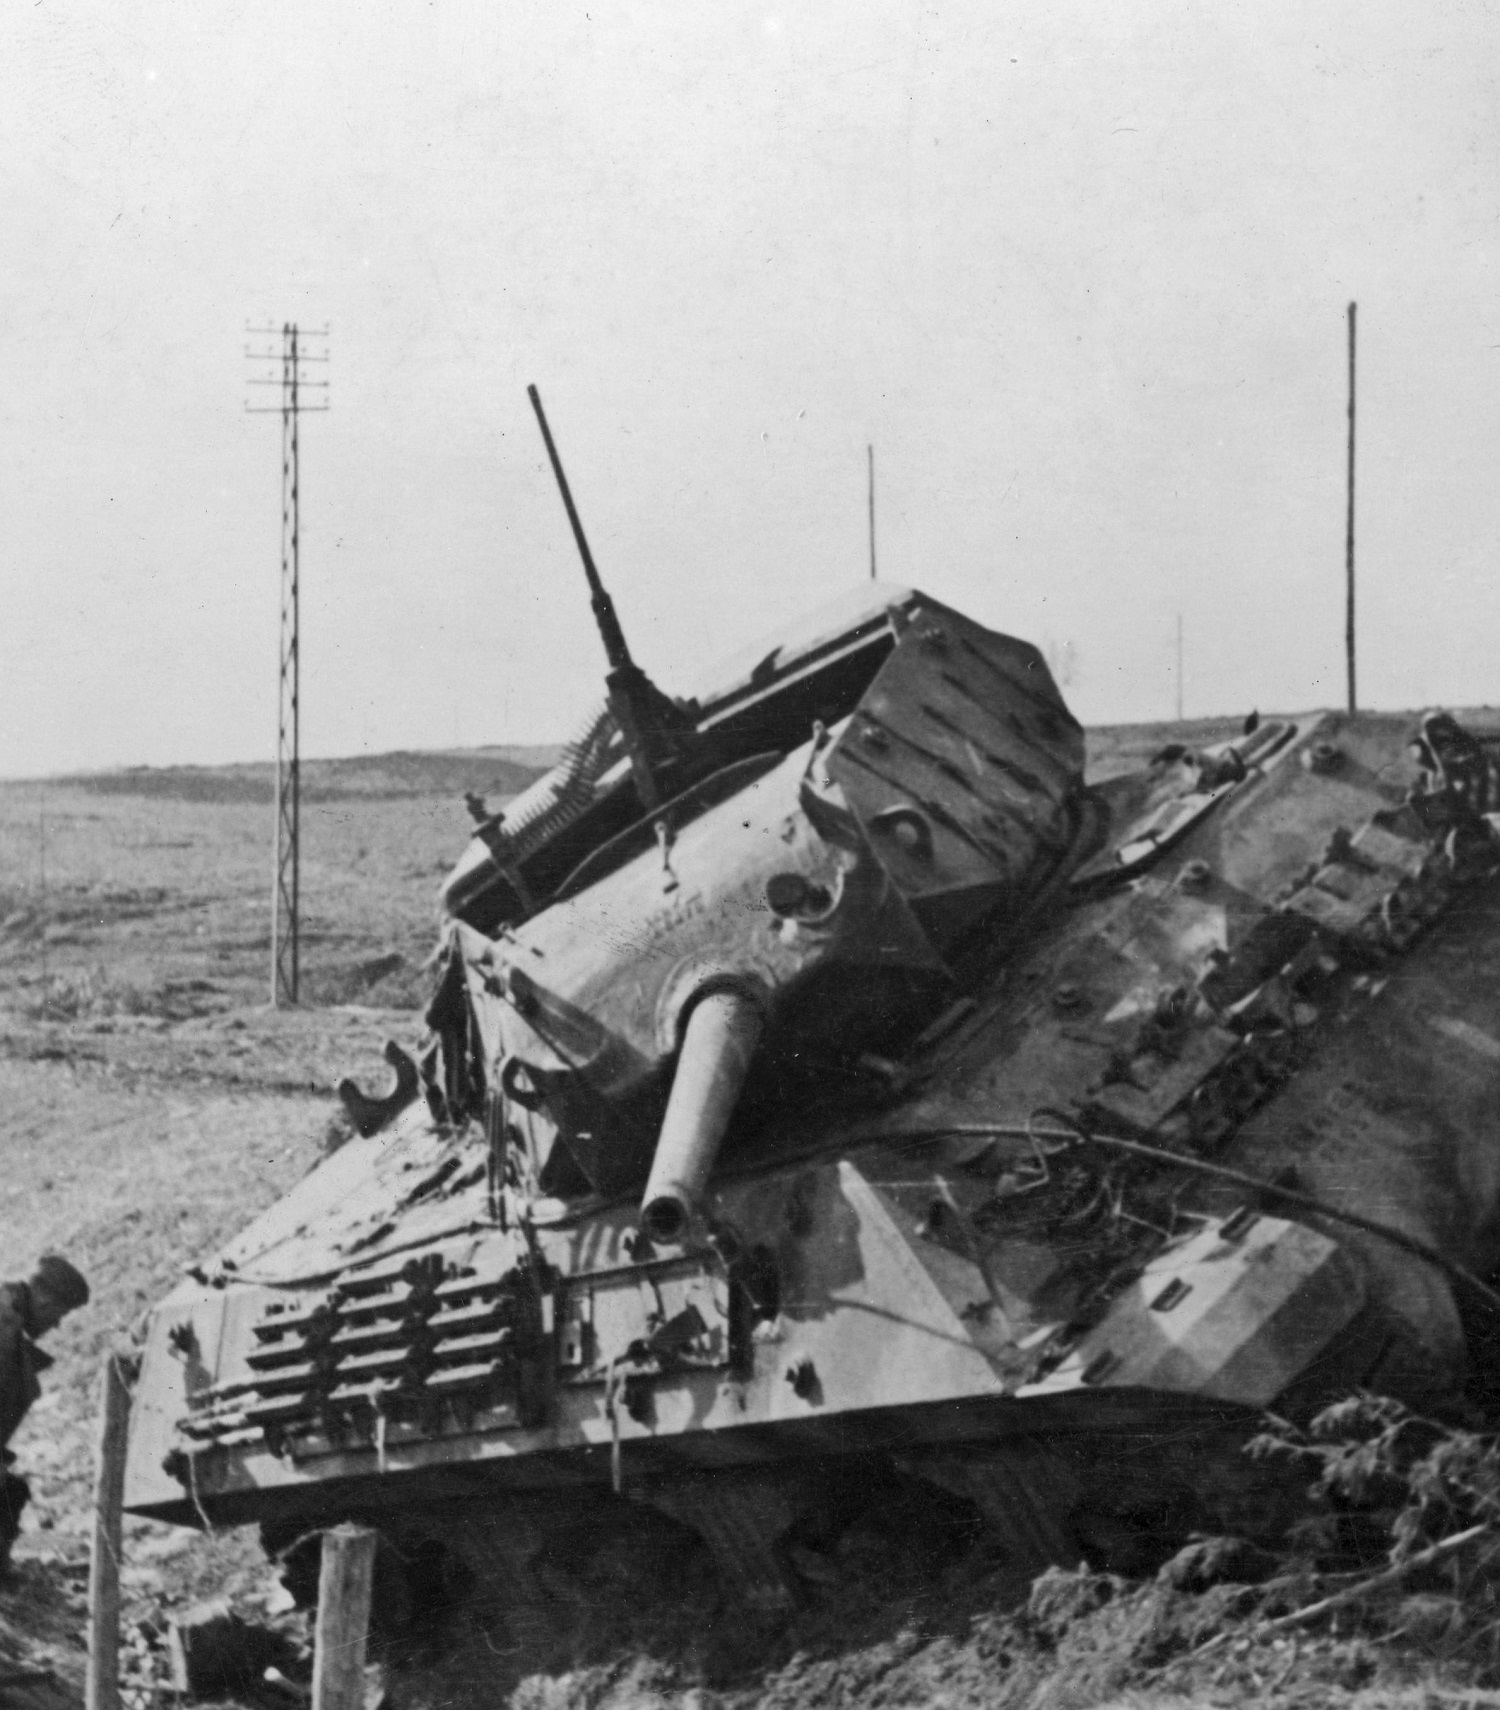 An American M10 tank destroyer. A similar one was hit and blown up by a German tank, until Mr. Gerard Louis found the answers in the woods.